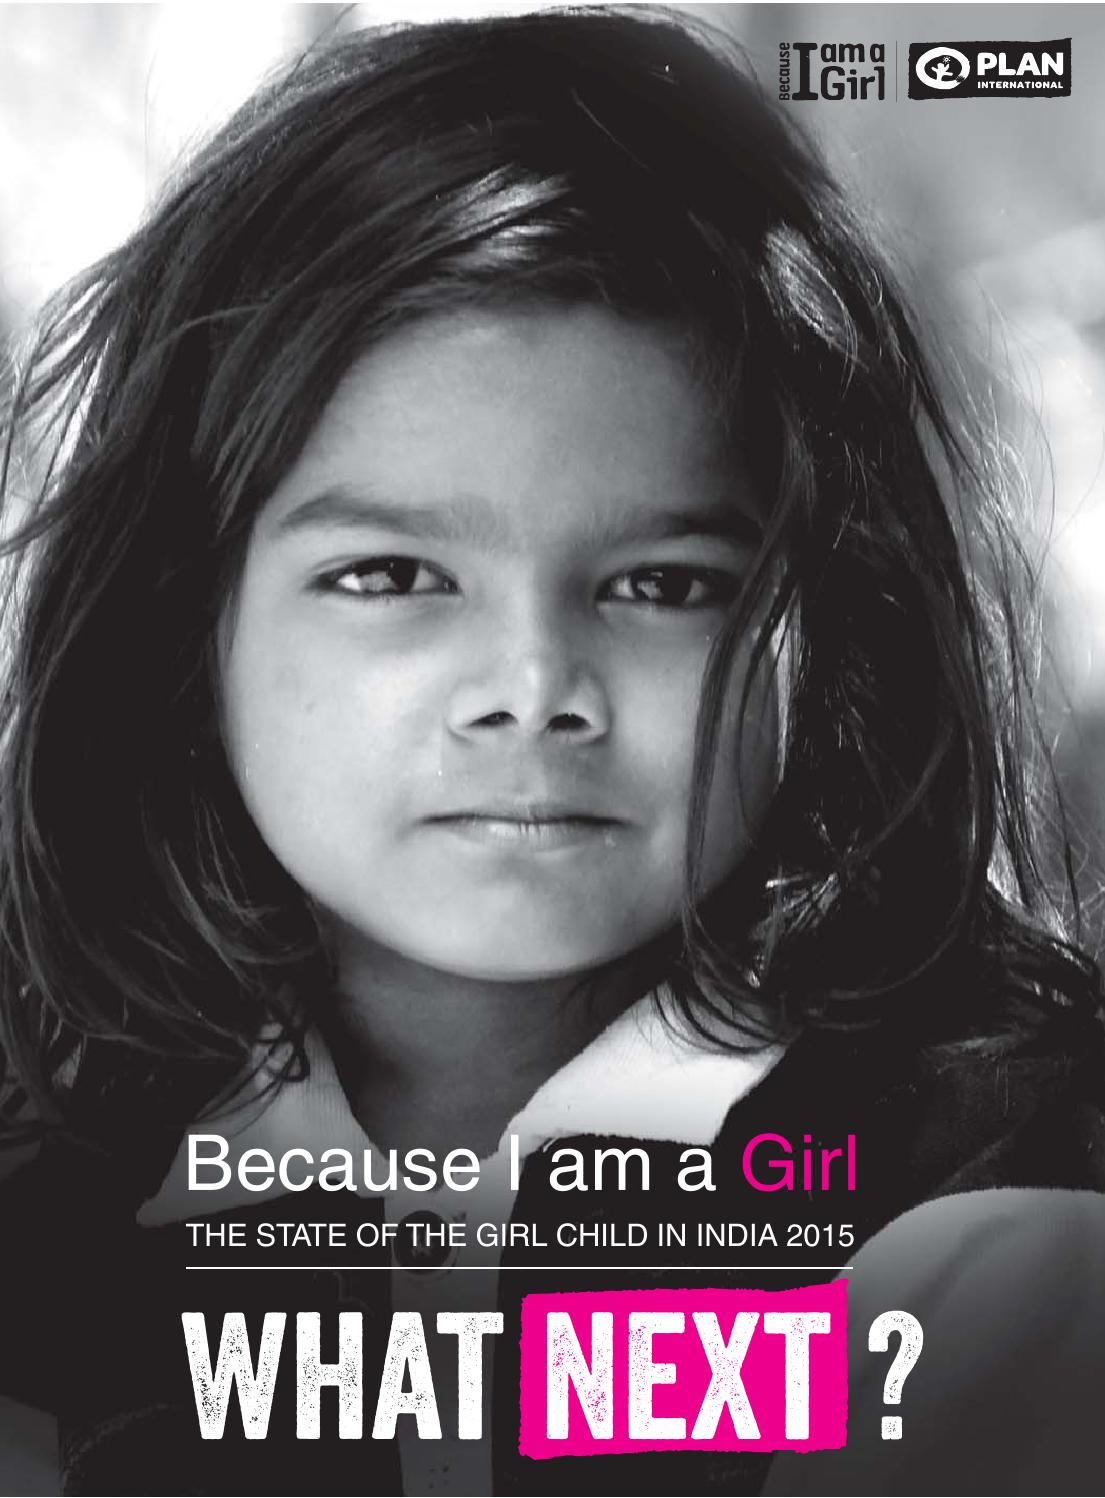 Because I am a Girl - The state of The Girl Child 2015 by